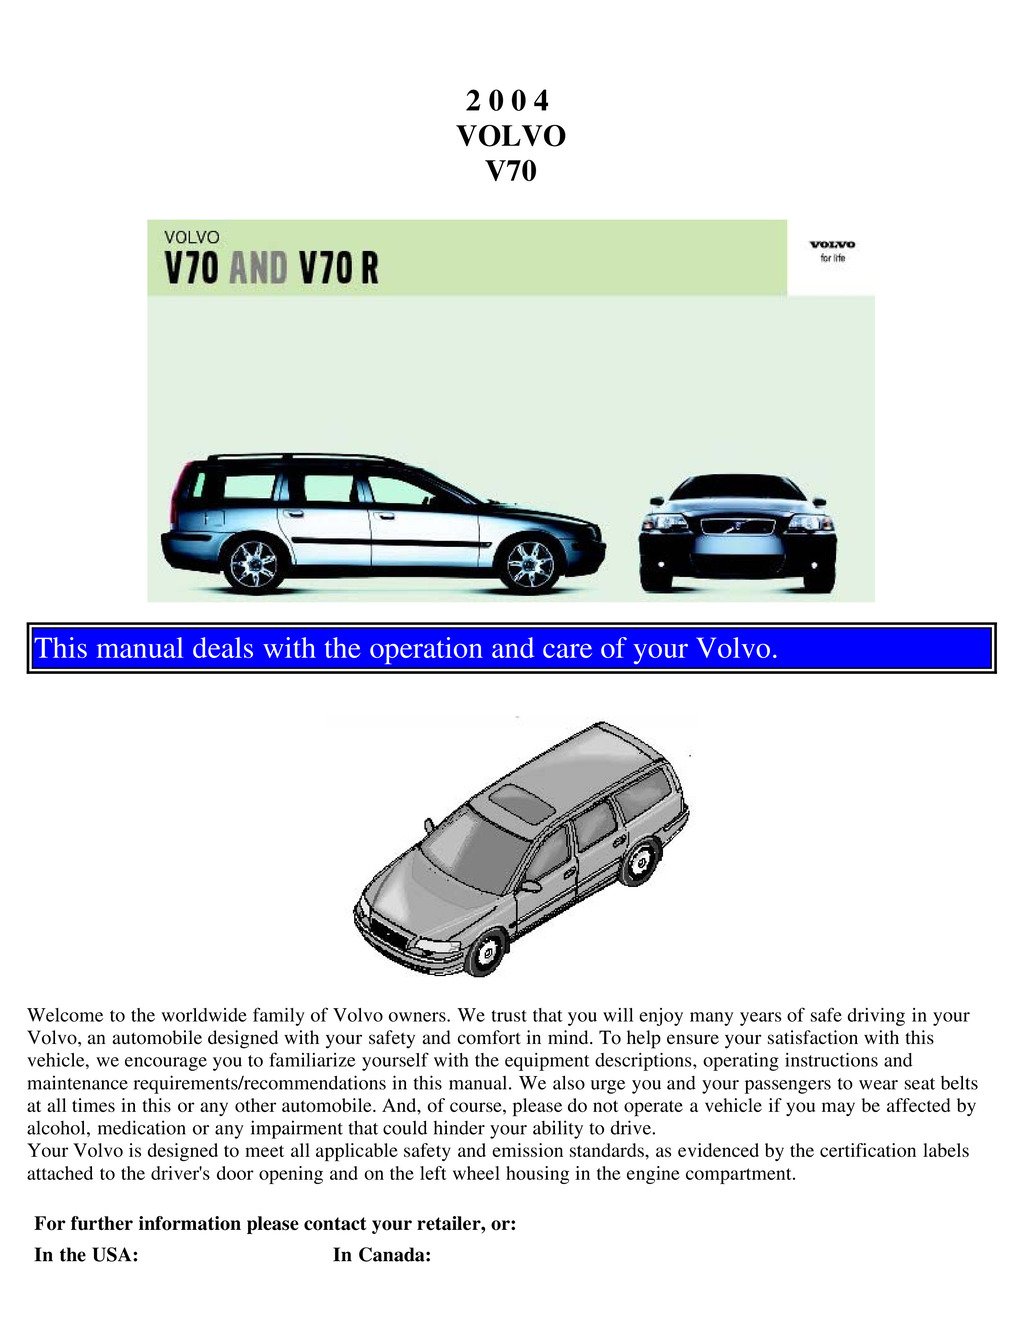 2007 Volvo V70 owners manual